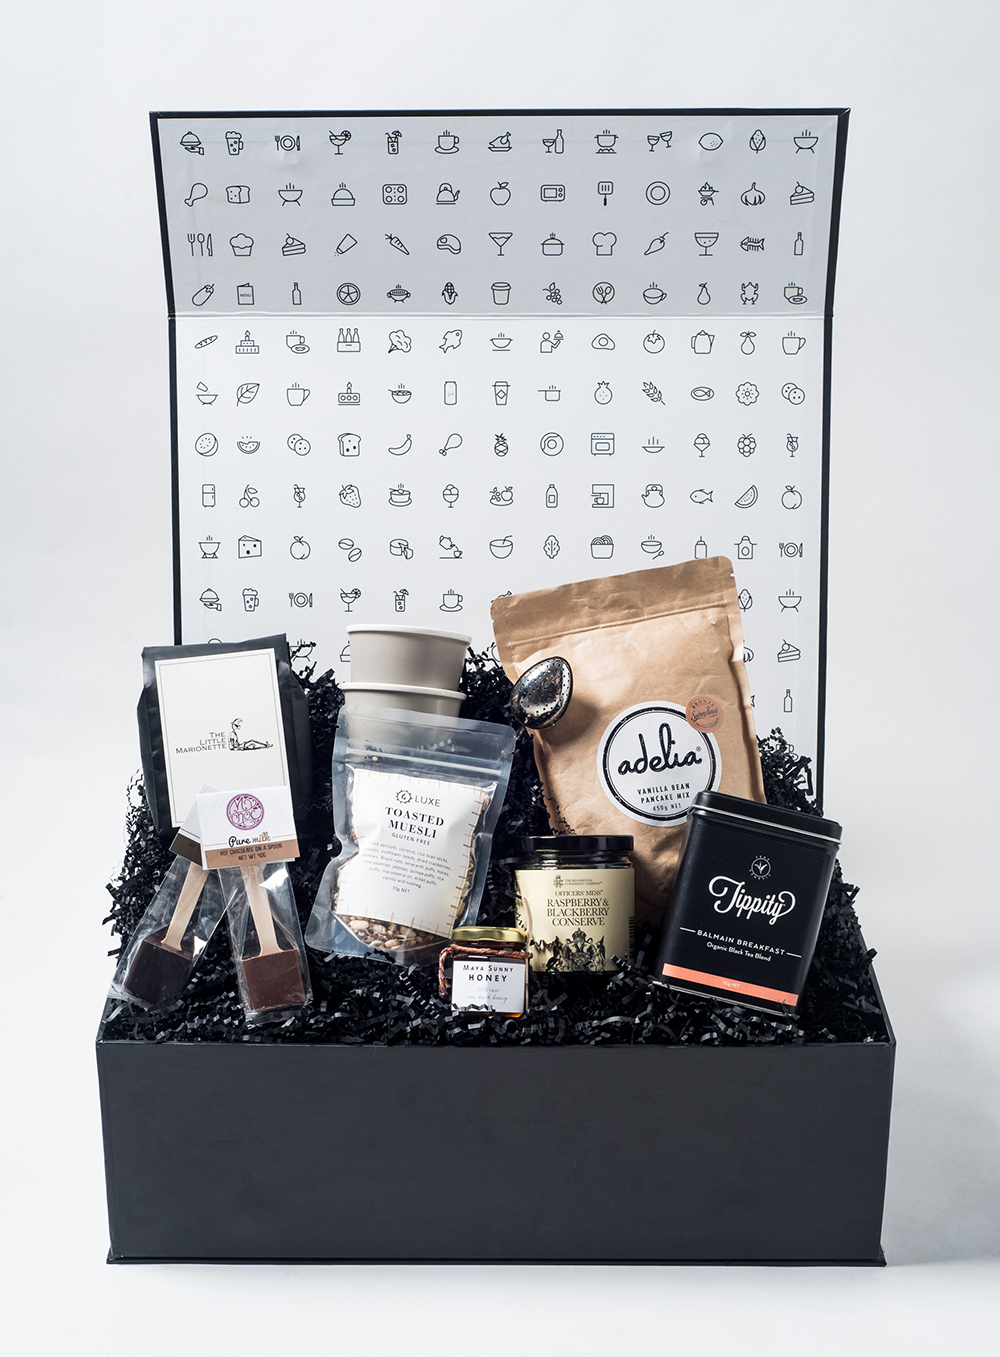 srg_hampers_017.jpg